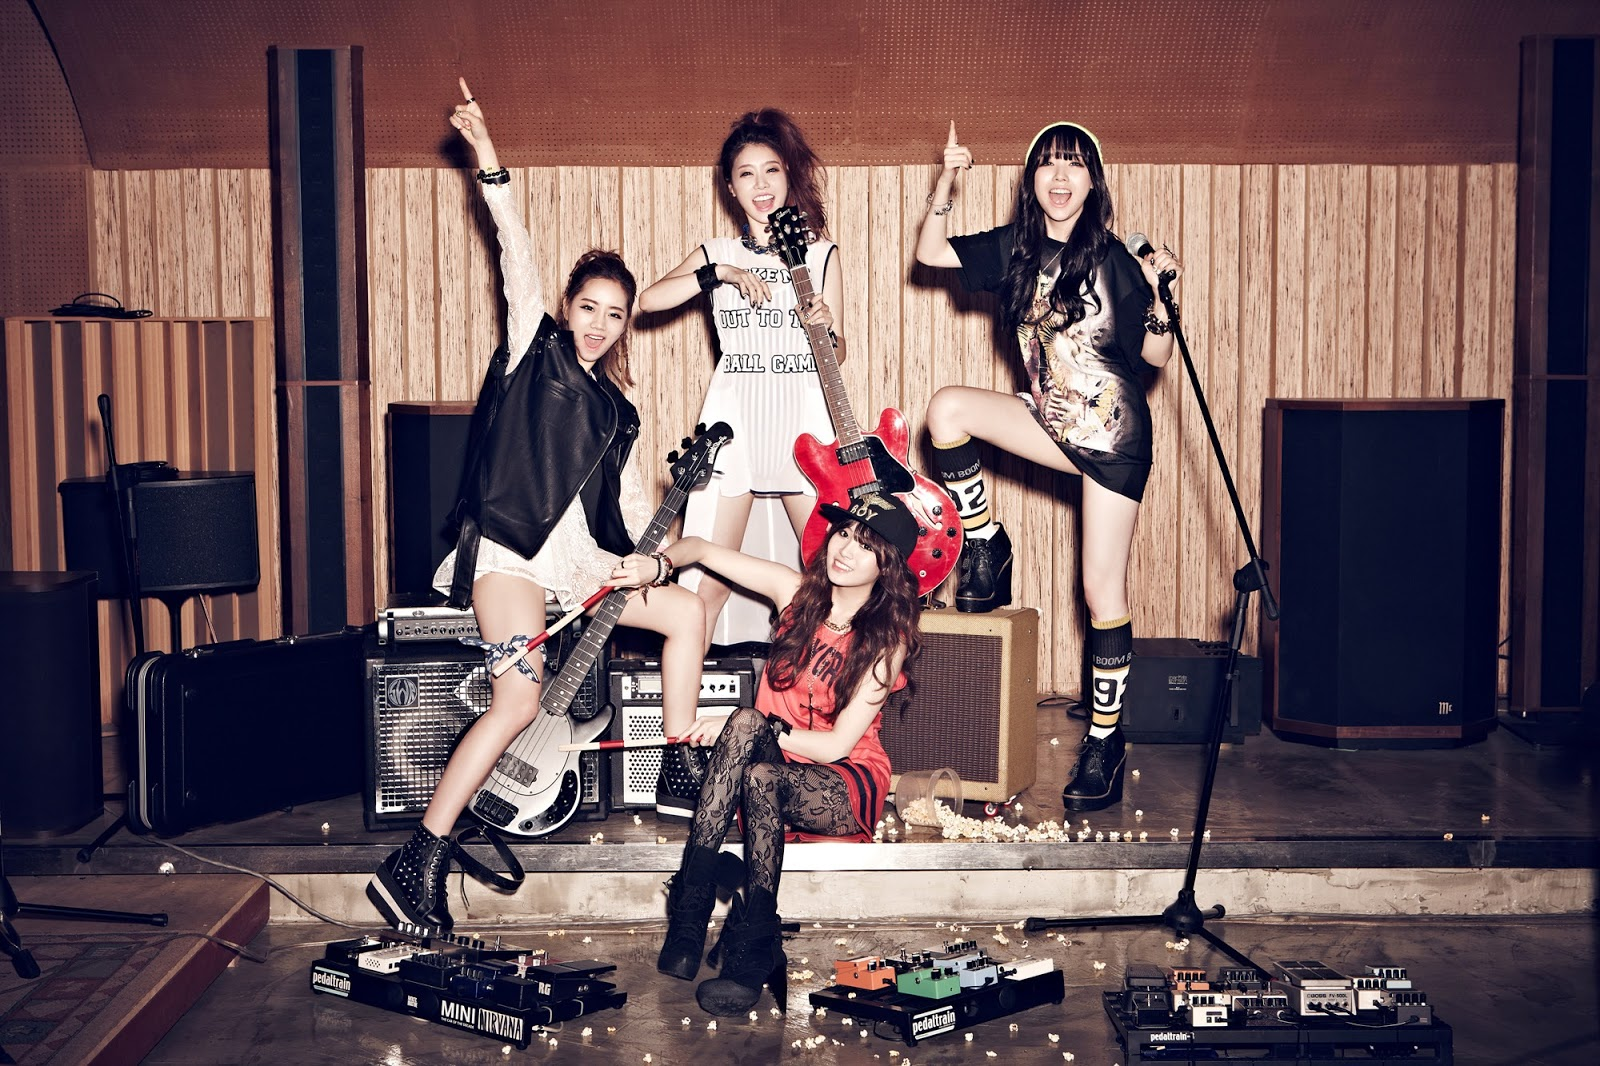 Latest-Kpop-Girl-s-Day-Music-Live-HD-HD-Quality-Also-downloa-all-of-Girl-s-Day-wallpaper-wp5807414